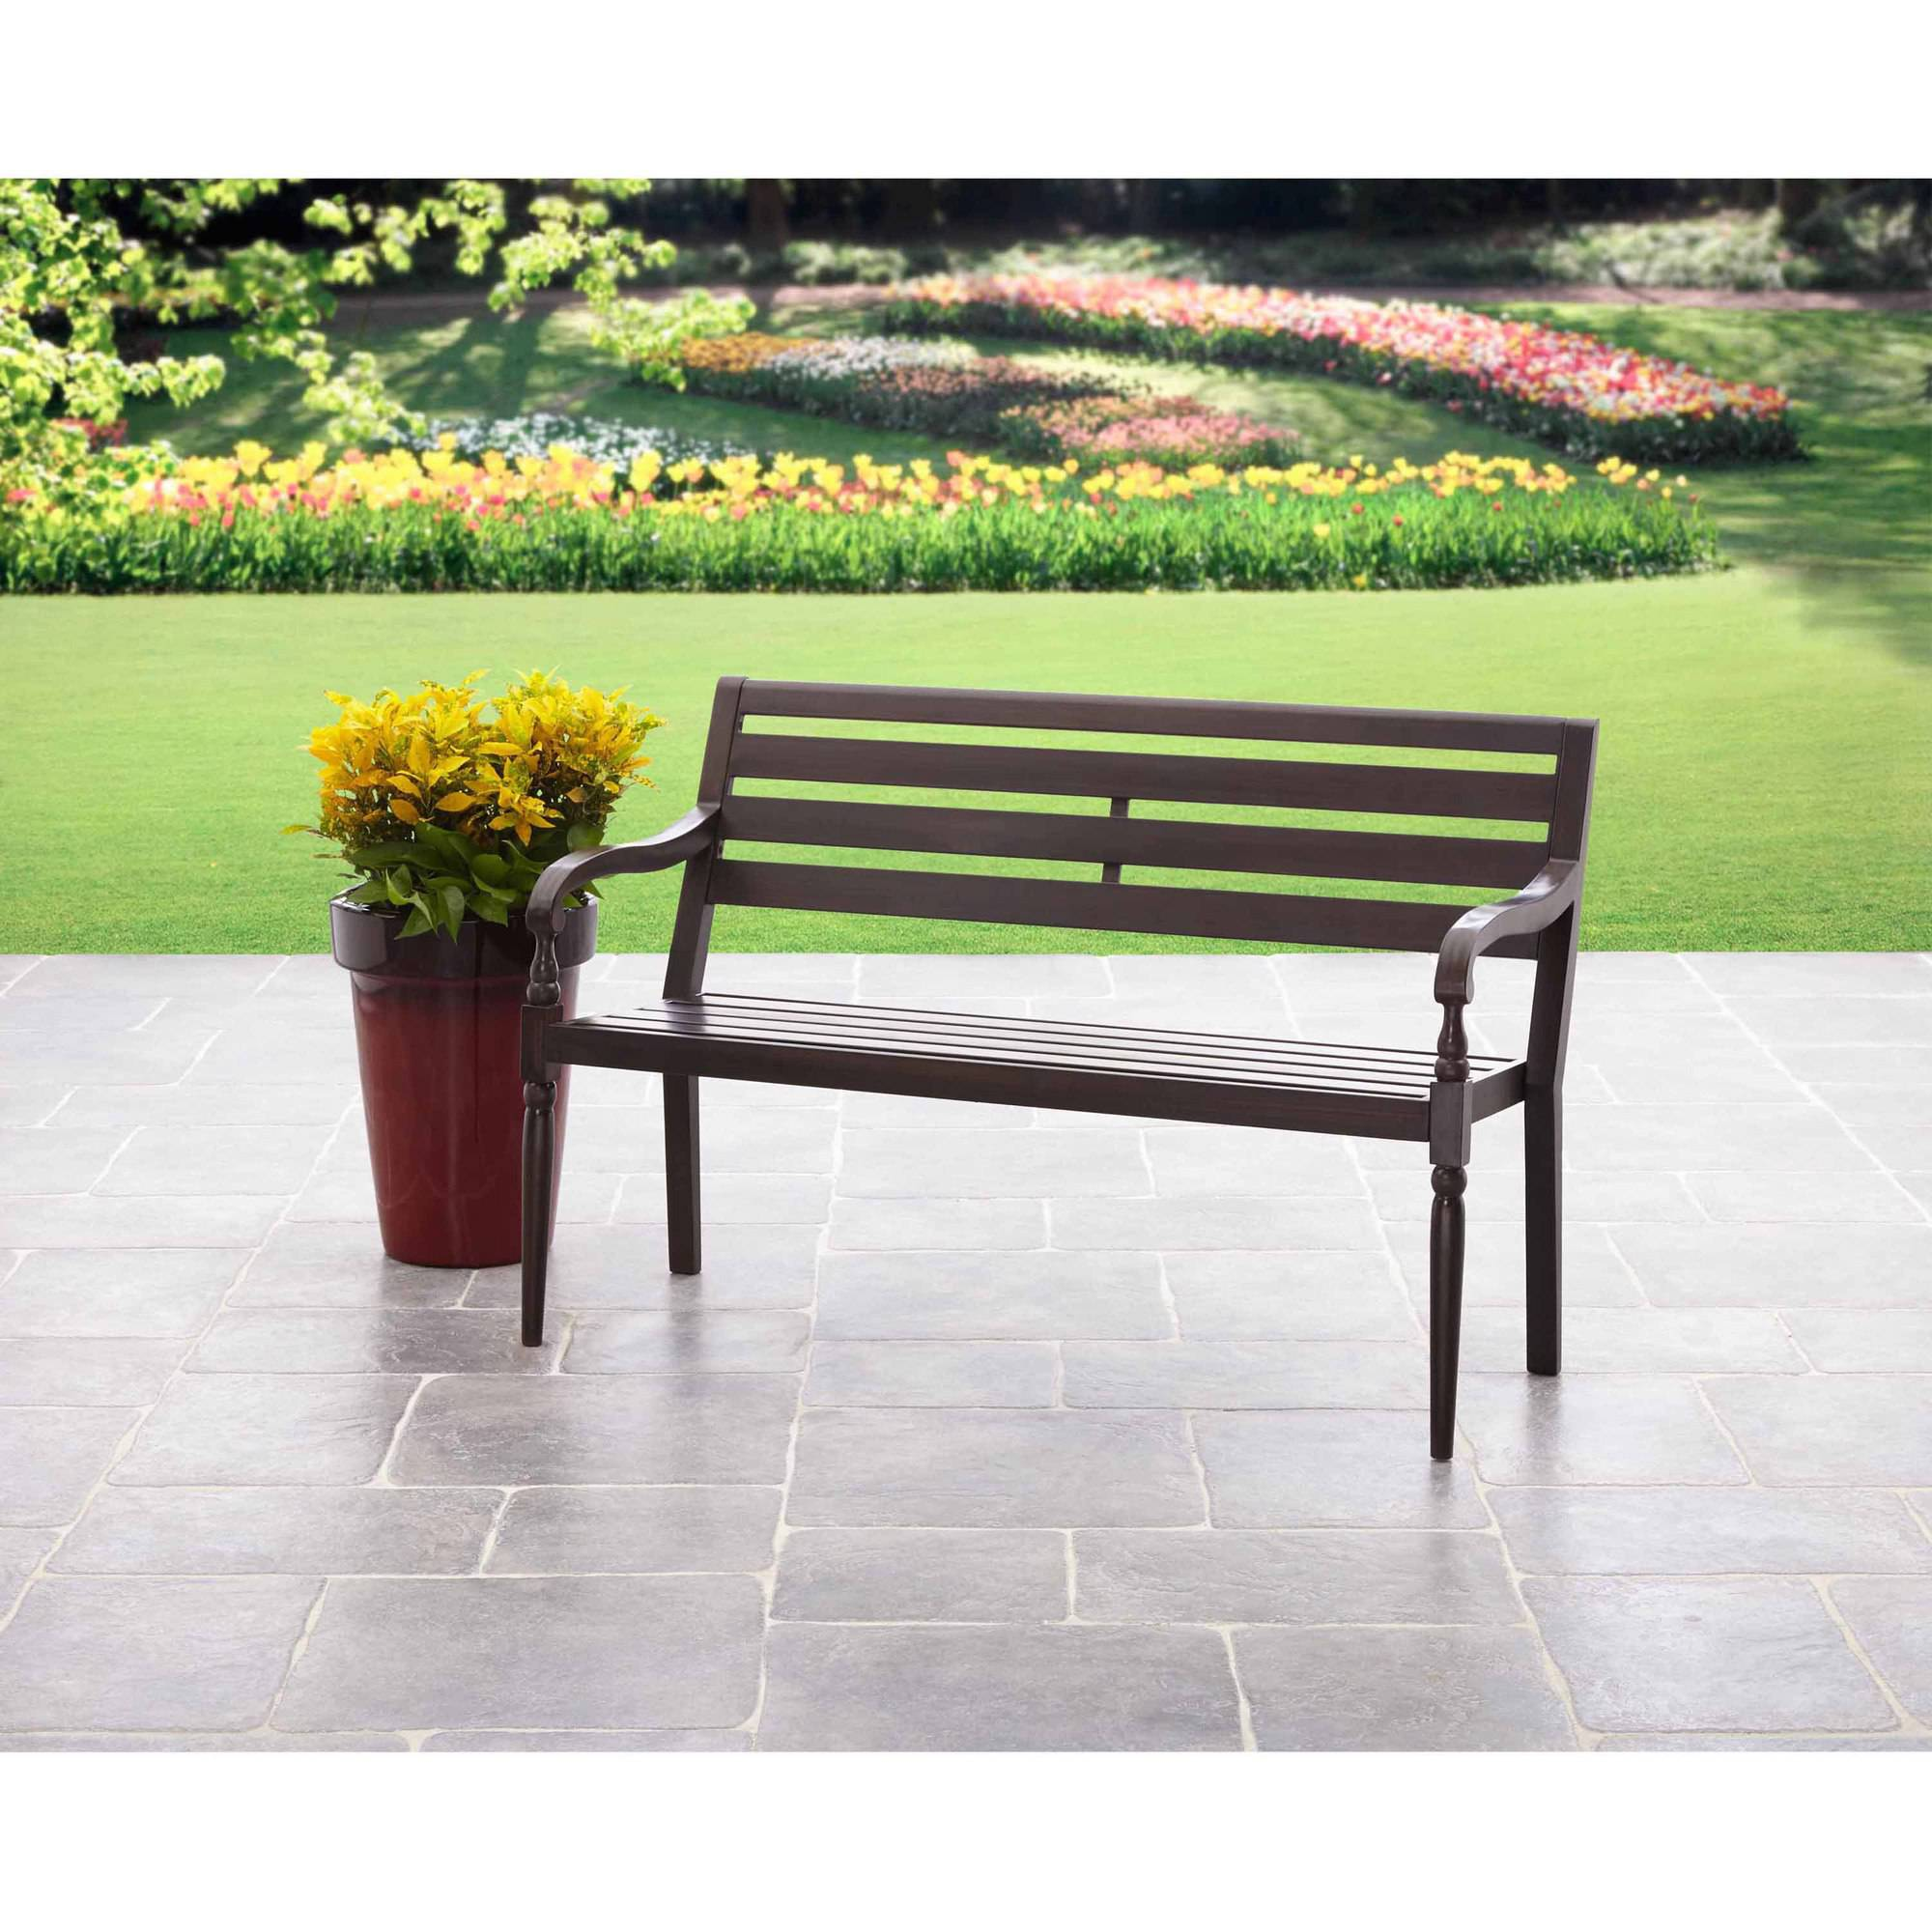 bcp 50 patio garden bench park yard outdoor furniture steel frame porch chair walmartcom